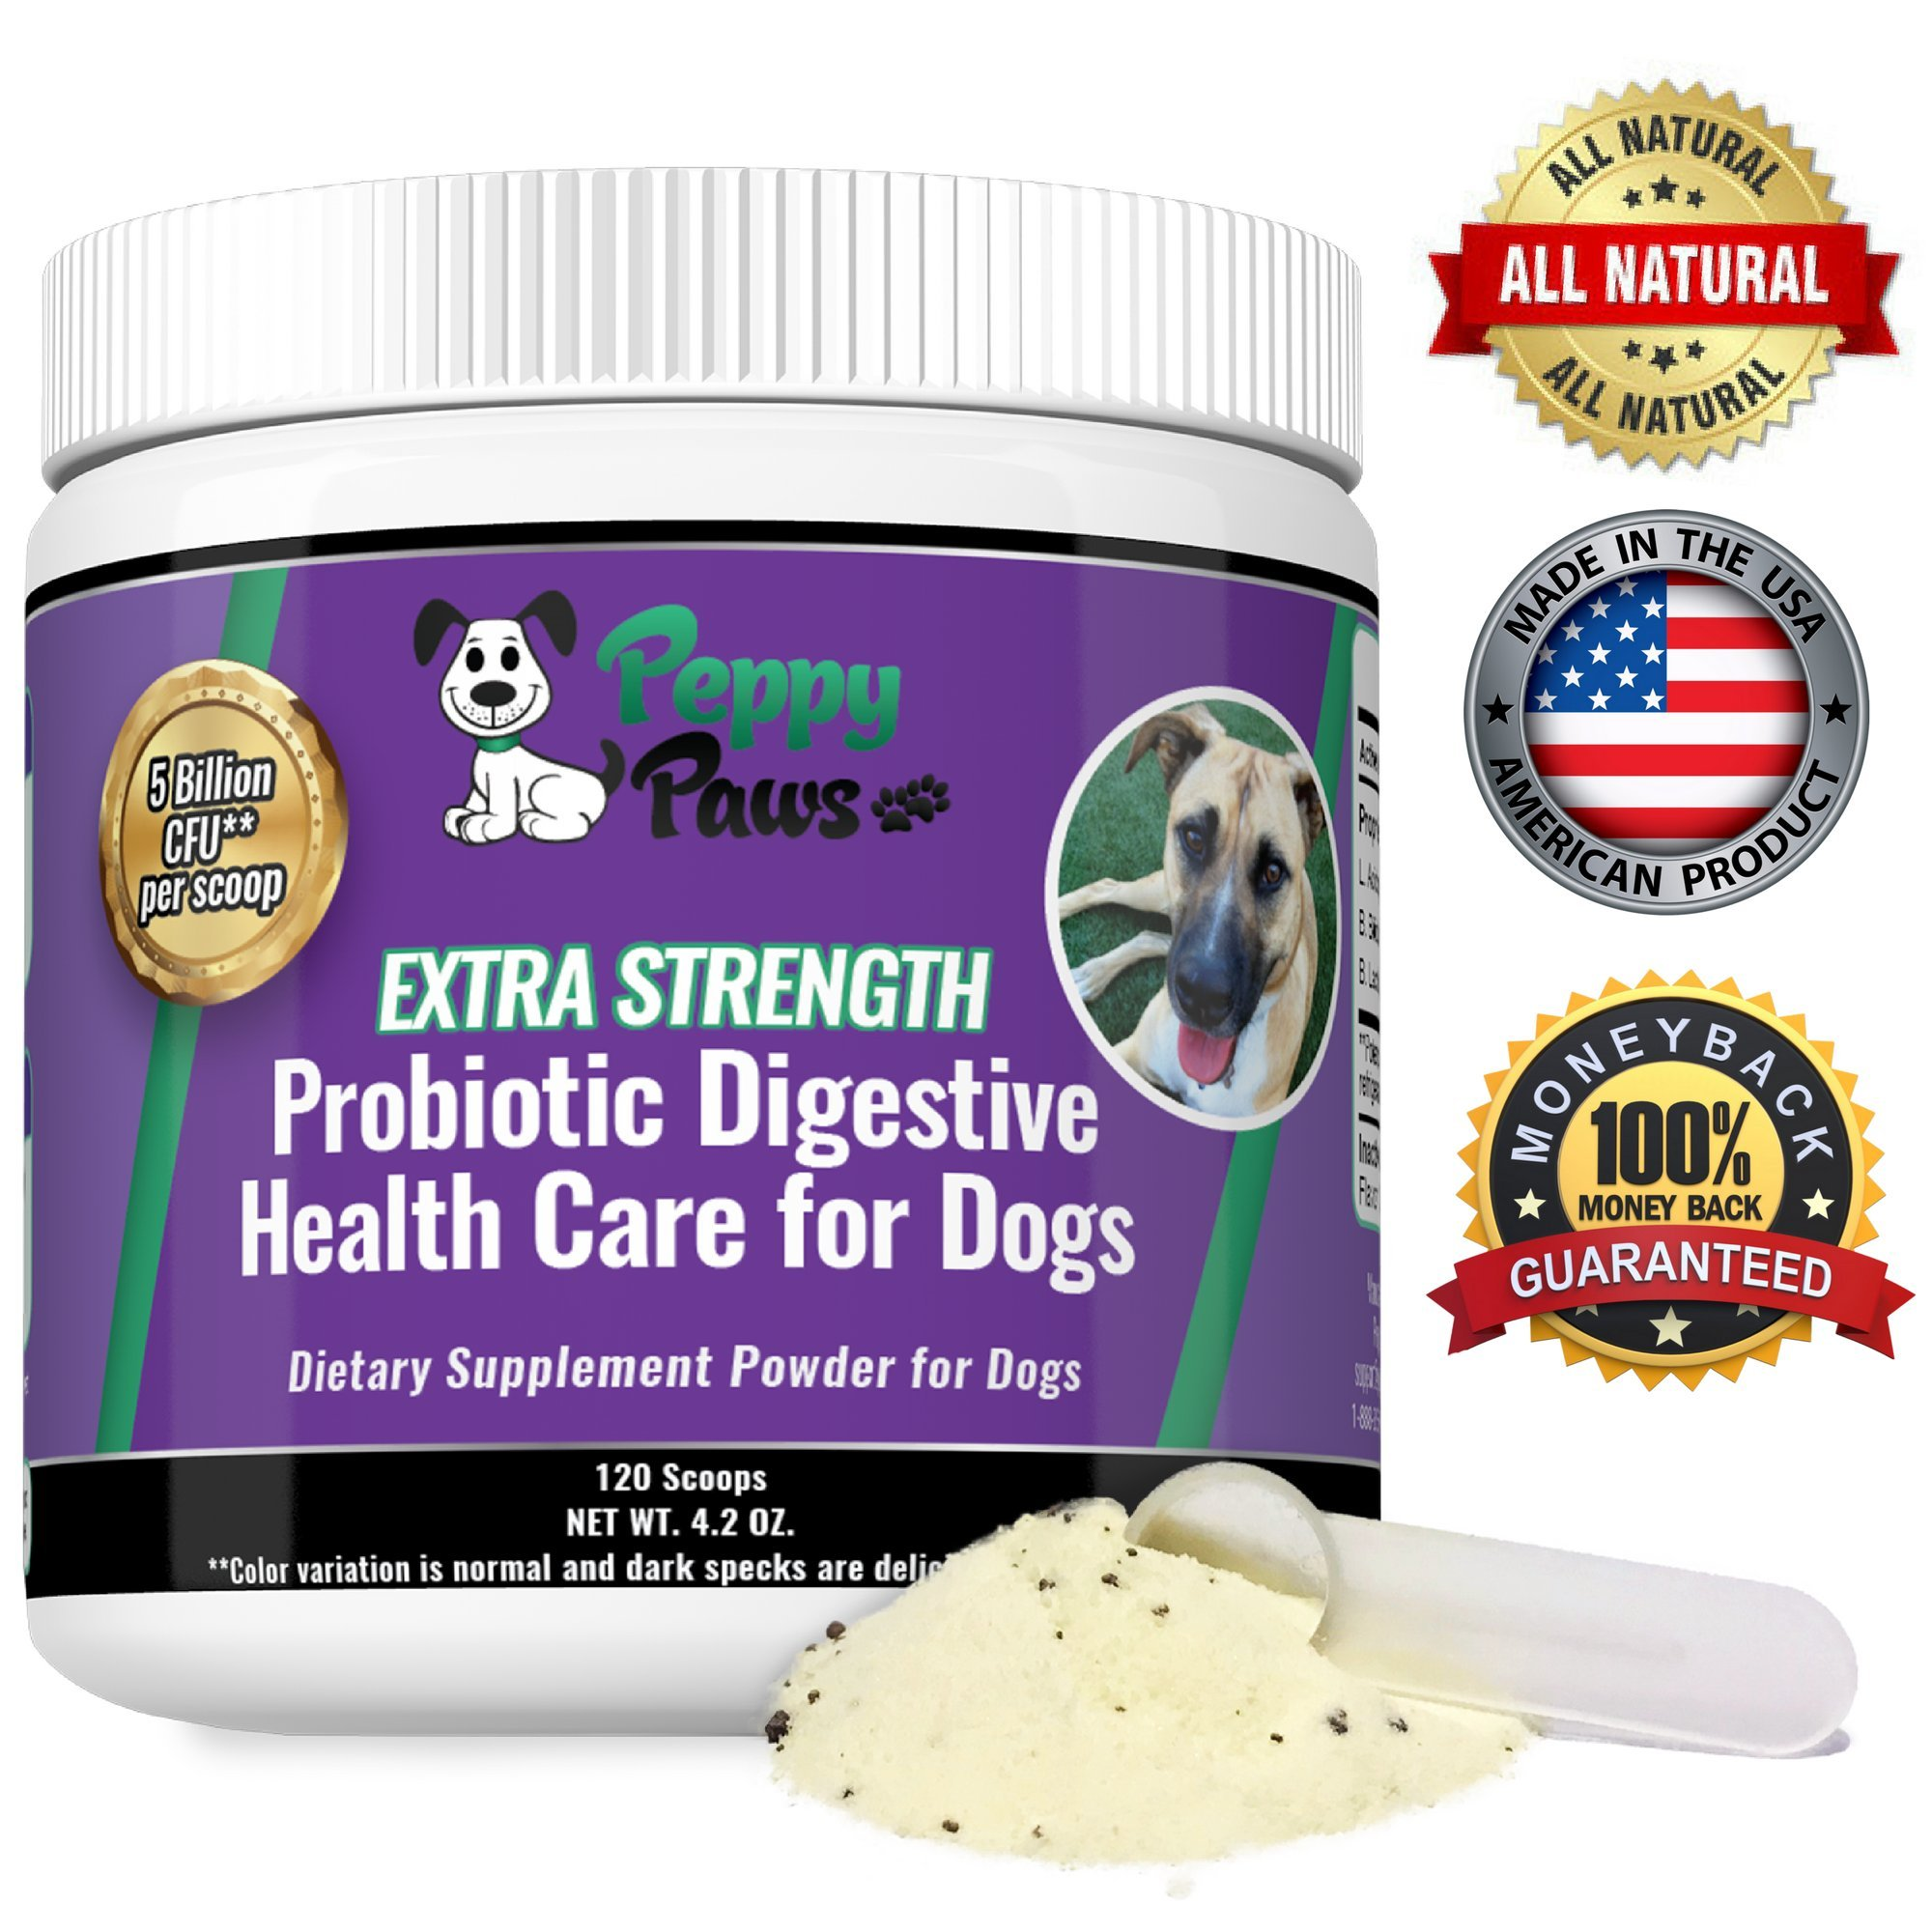 Best Probiotics for Dogs with Acidophilus Improves Dog Constipation, Gas, Dog Diarrhea, Bad Breath, Allergies, All Natural Dog Probiotic Powder, 5 Billion CFUs, Probiotics for Puppies to Seniors